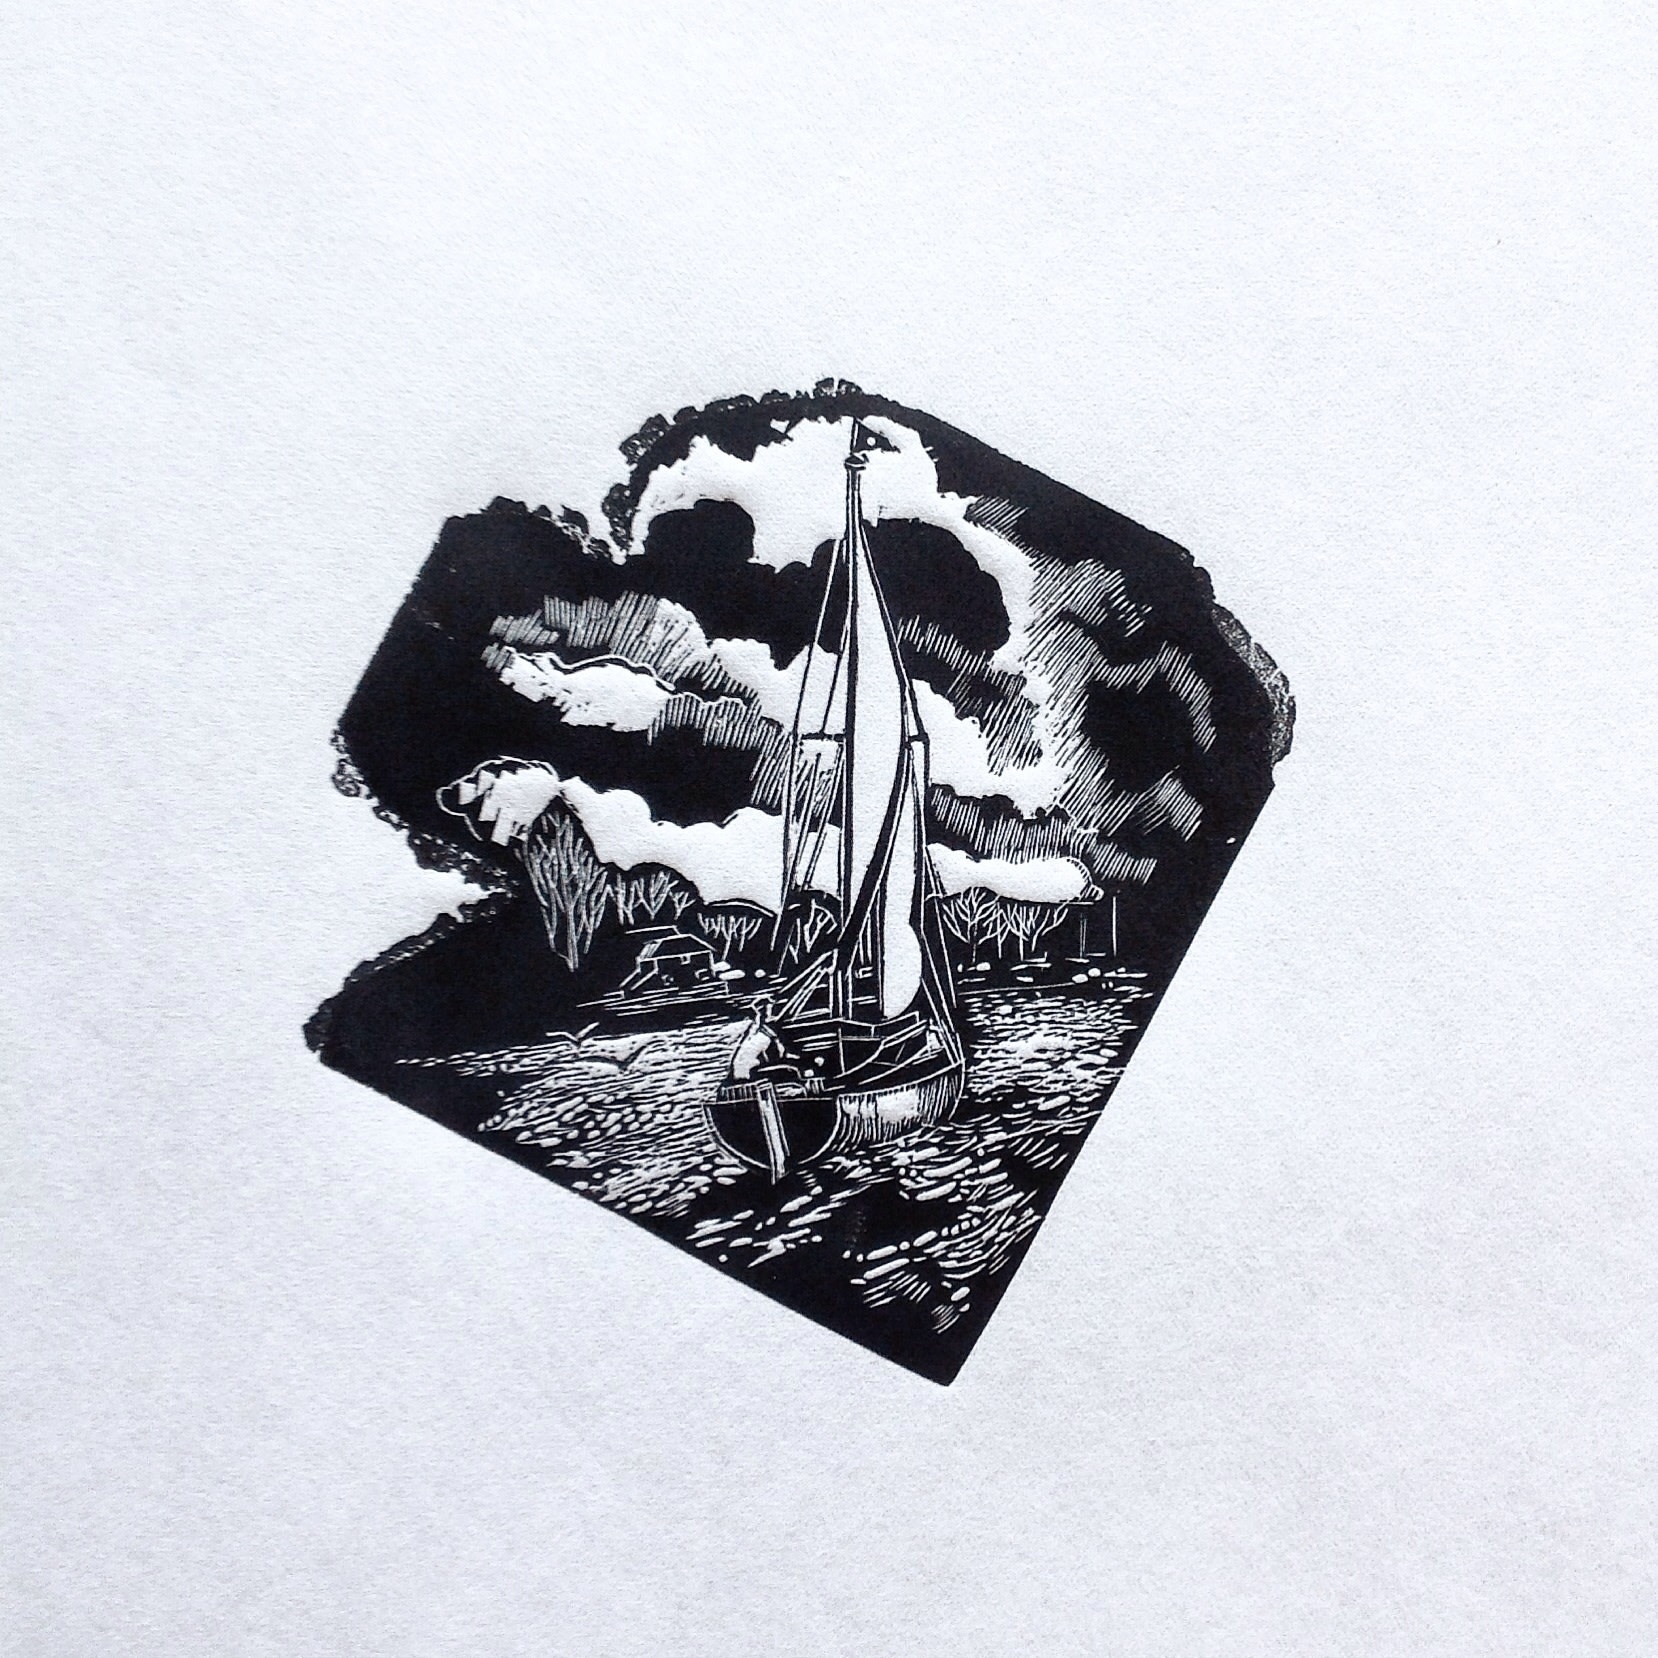 """<span class=""""link fancybox-details-link""""><a href=""""/exhibitions/17/works/image_standalone827/"""">View Detail Page</a></span><p><strong>Chris Wood</strong></p><p>Leading Wind</p><p>wood engraving, ed of 75</p><p>28 x 29cm</p><p>£218 framed</p><p>£145 unframed</p>"""